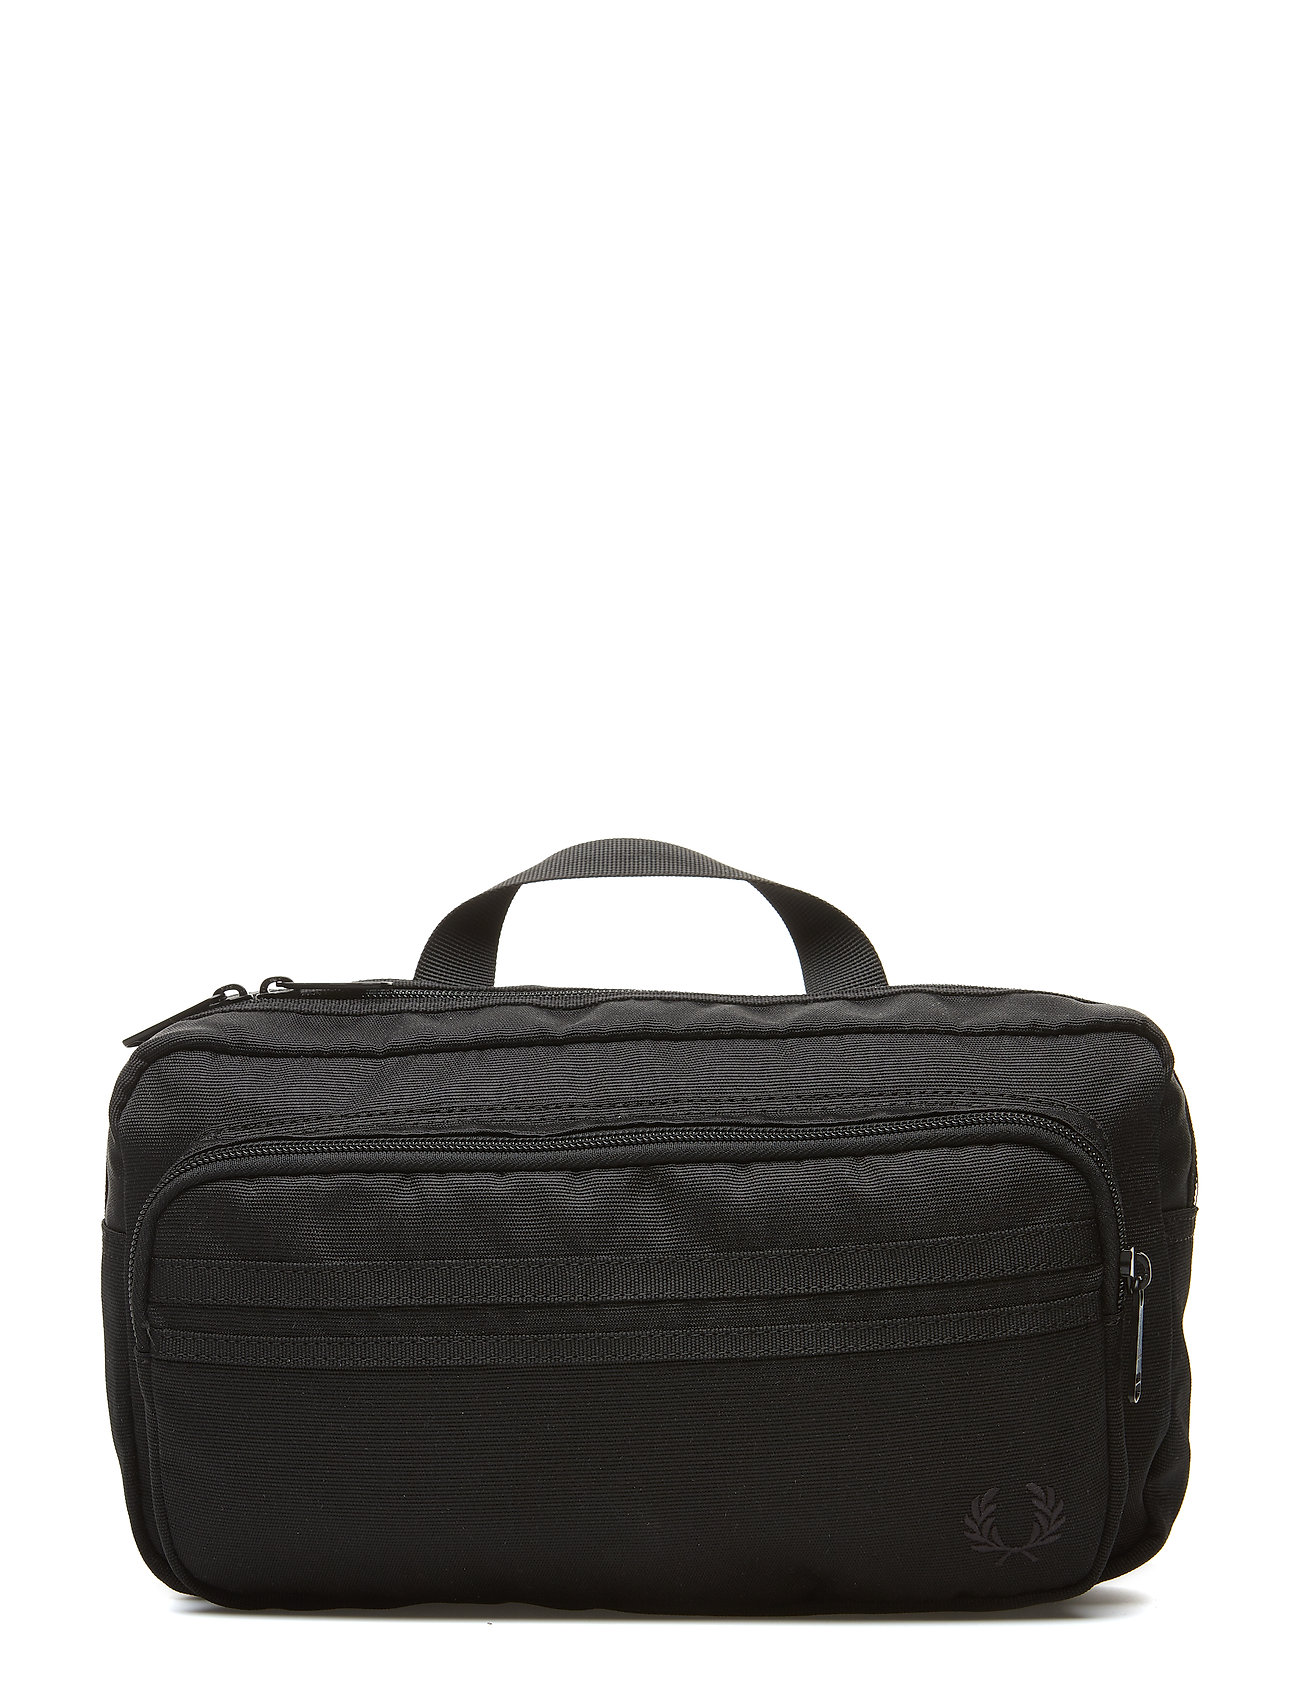 Fred Perry CROSS BODY BAG - BLACK